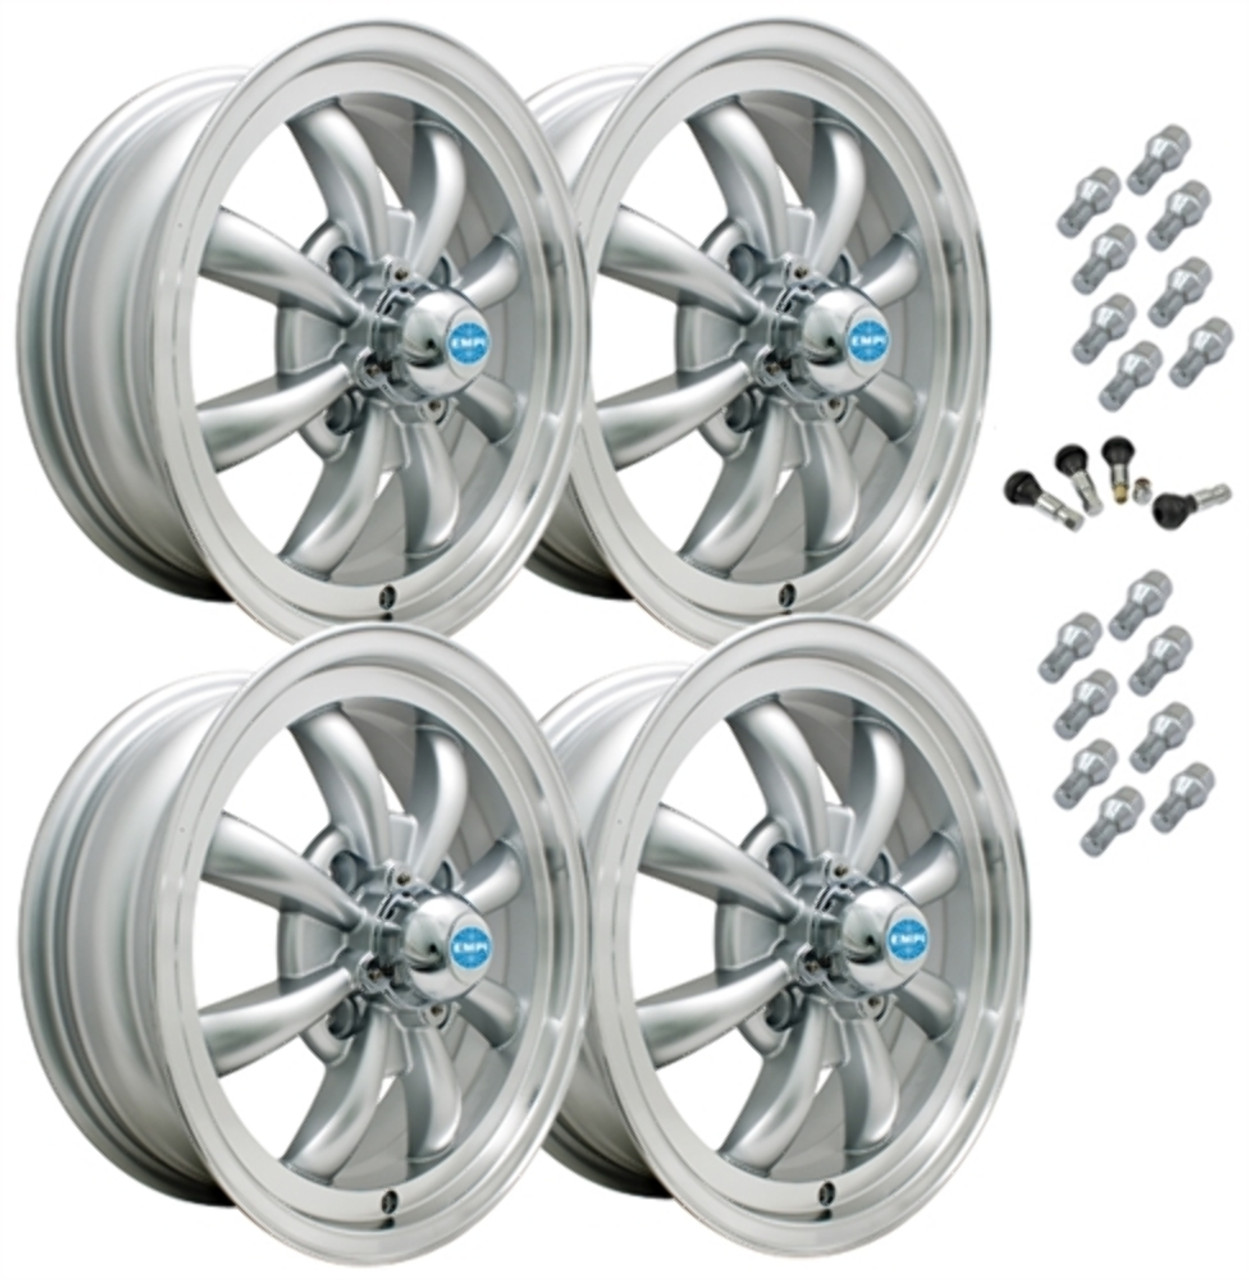 9685 EMPI GT-8 STYLE WHEEL PACKAGE, 4-LUG VW BUG, GHIA, TYPE 3,  4PC SET, SILVER, 15 X 5-1/2, 4 ON 130MM